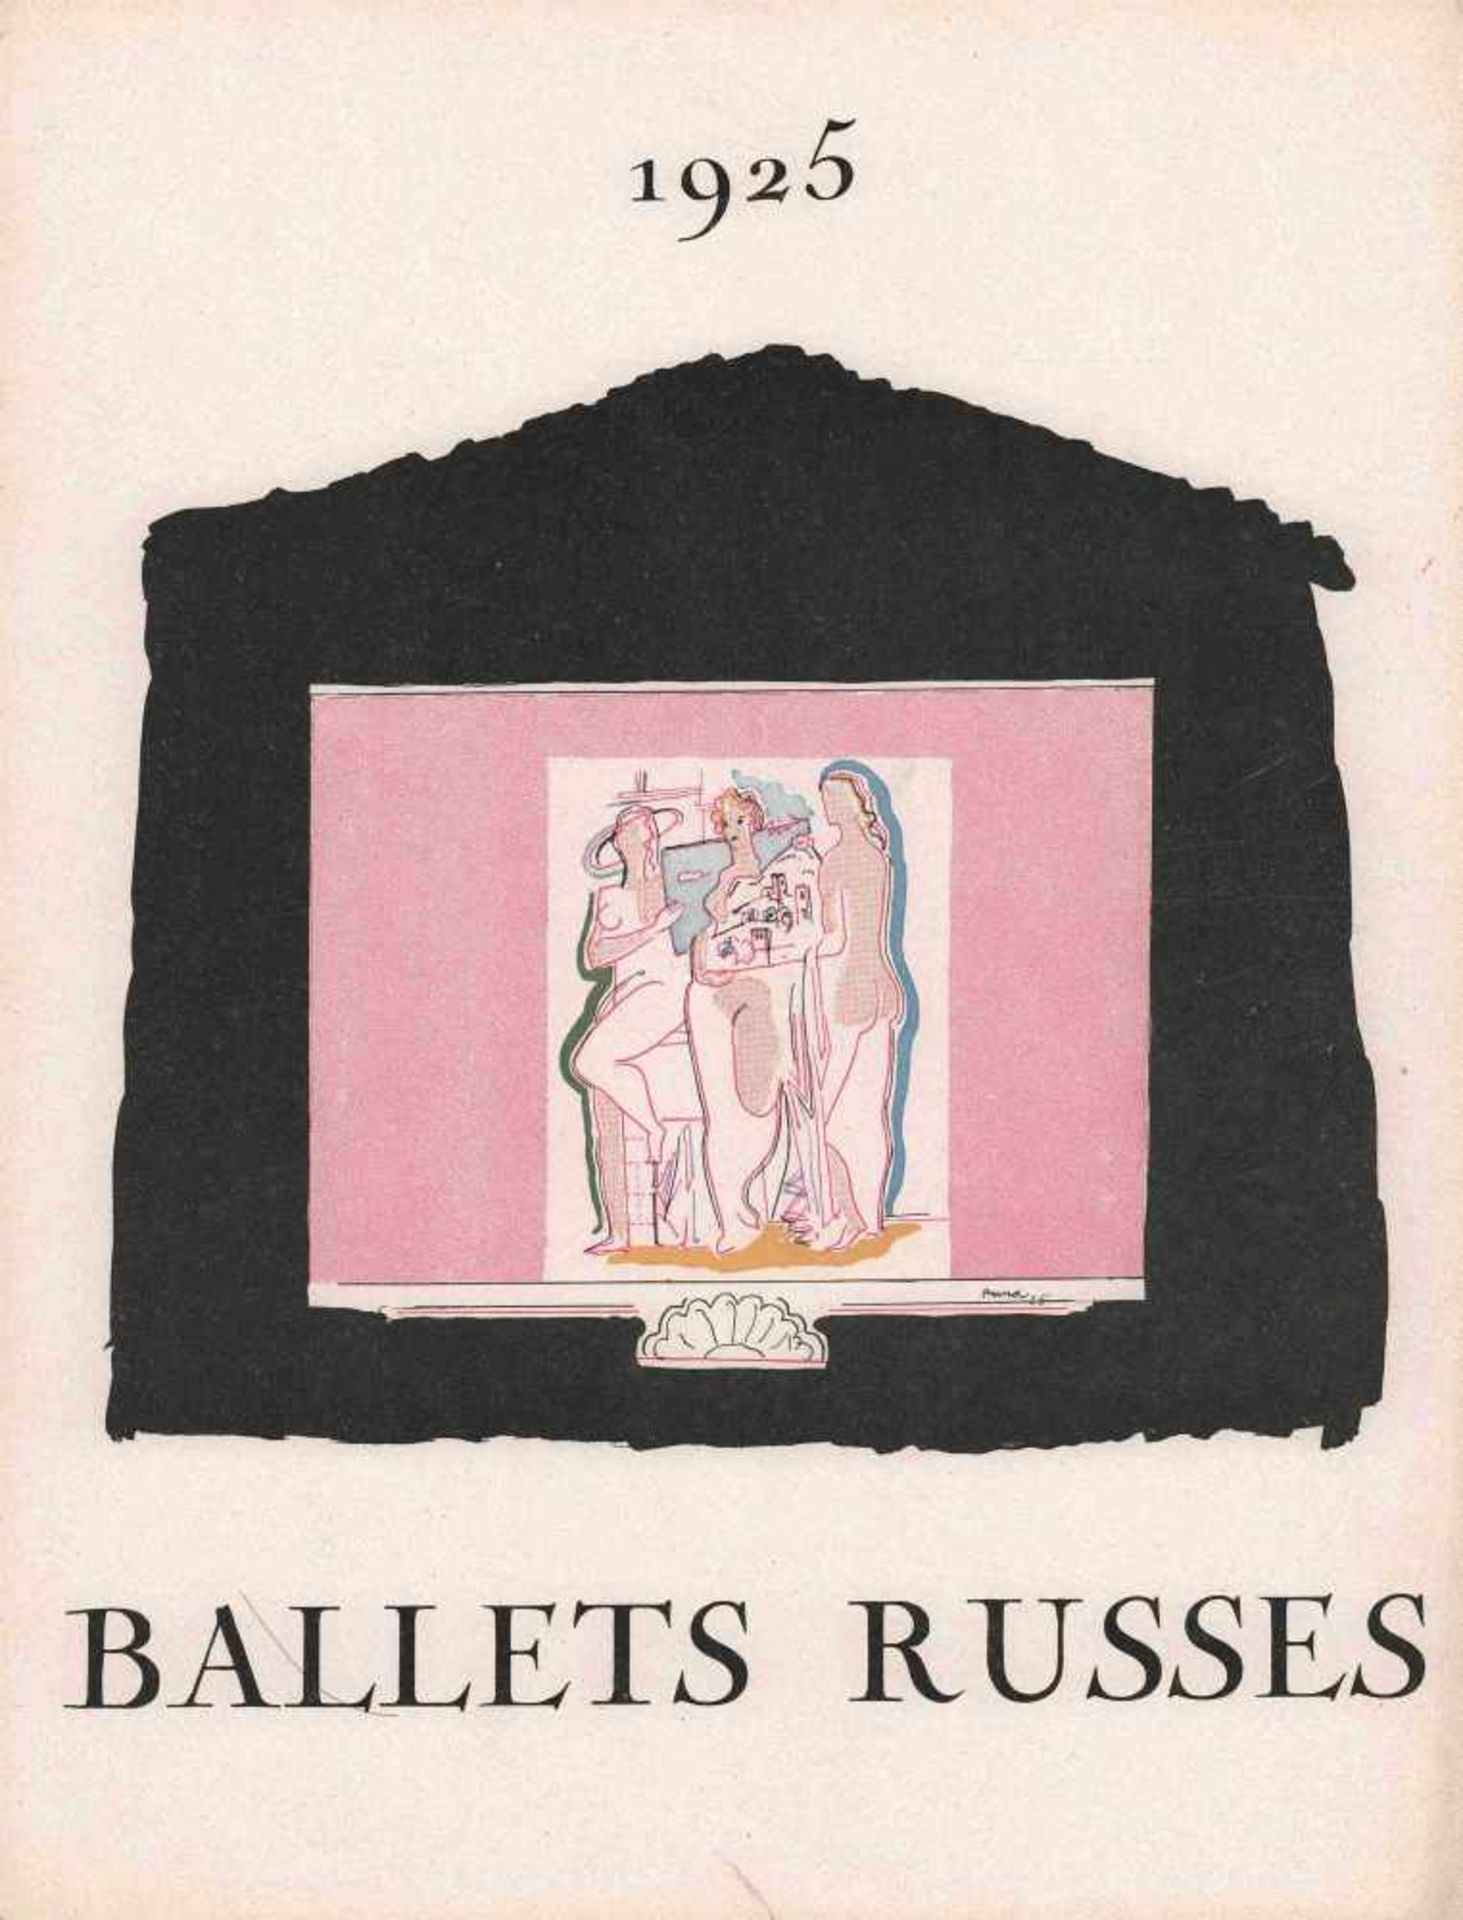 [BALLETS RUSSES, PRUNA, PICASSO, DIAGHILEW] Ballets Russes des Sergei Djagilew in Paris. Juni